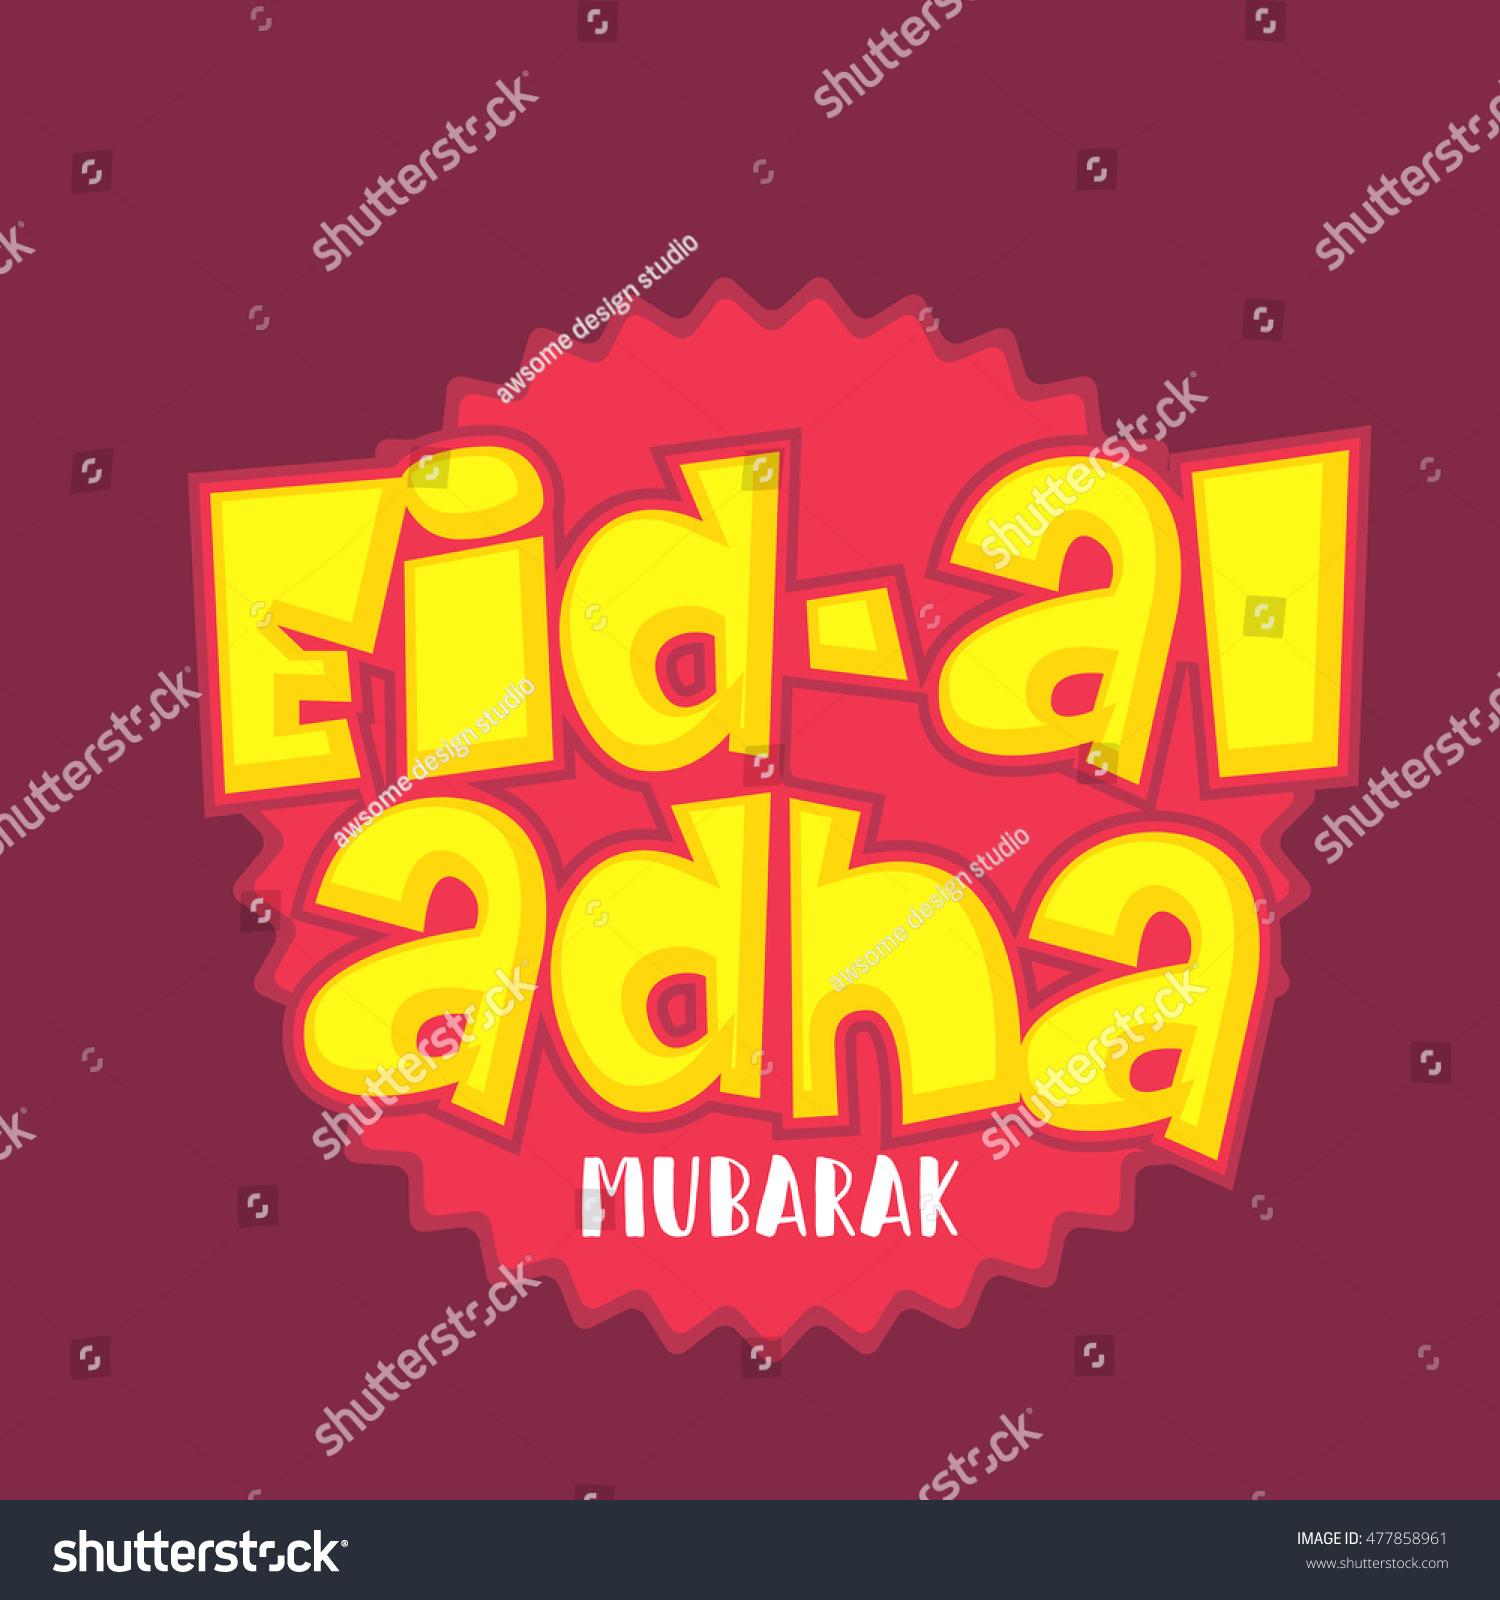 A beautiful sticker or label of eid al adha celebration background